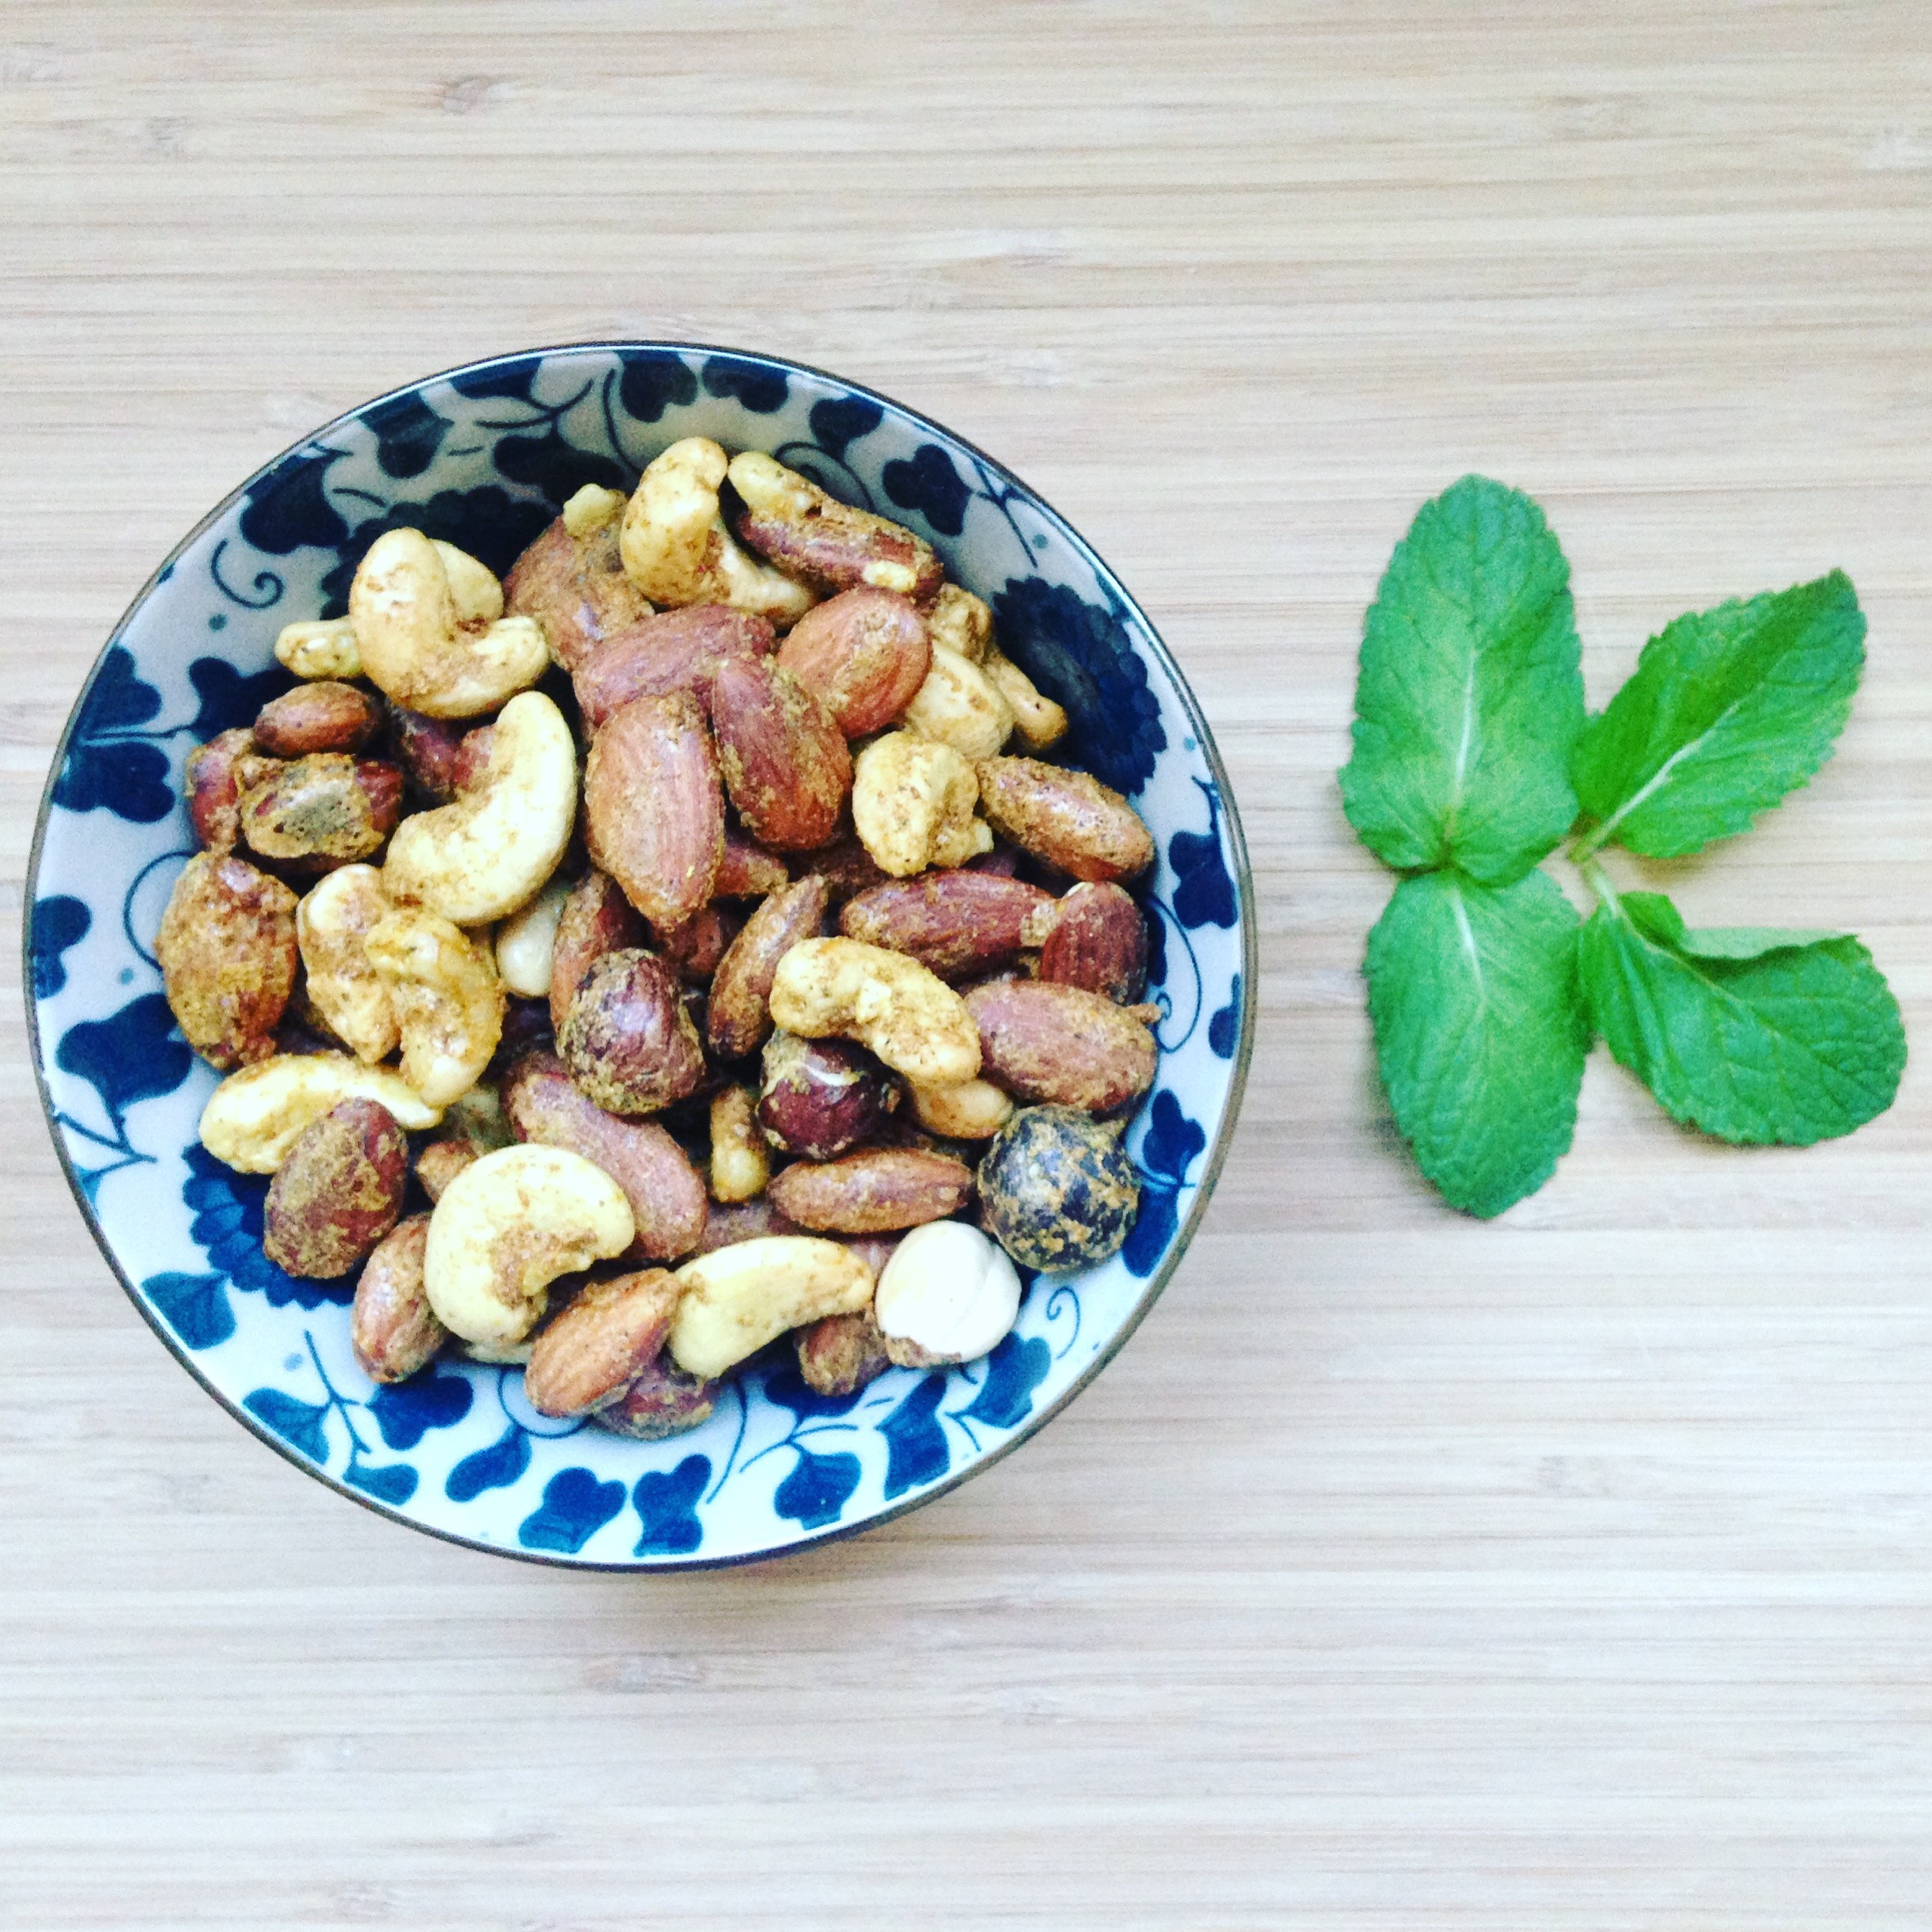 Curry nuts